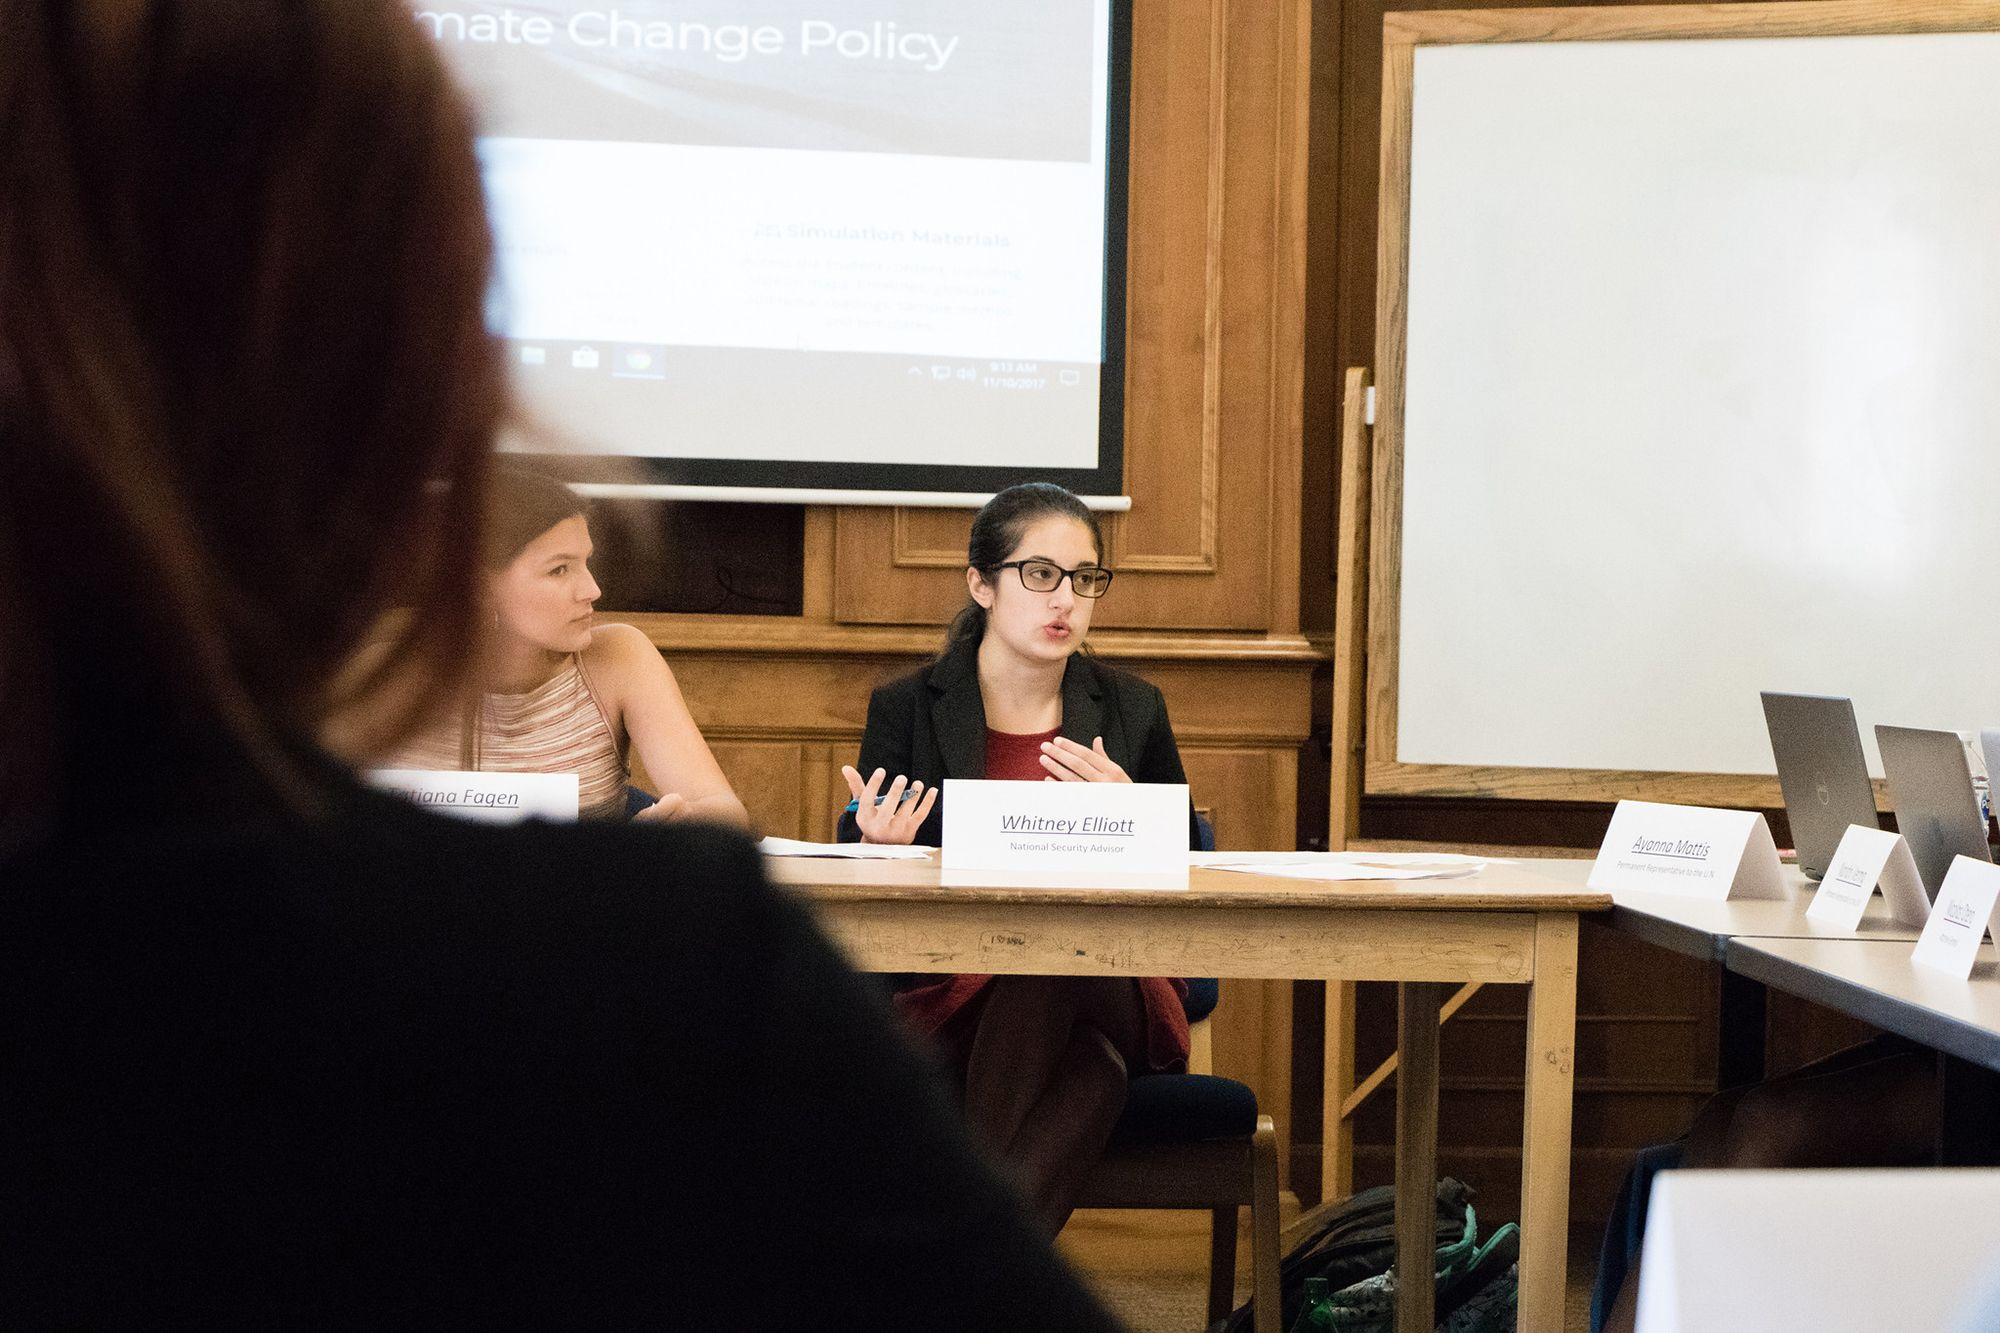 Rollins student speaking about climate change policy as part of a Model UN.